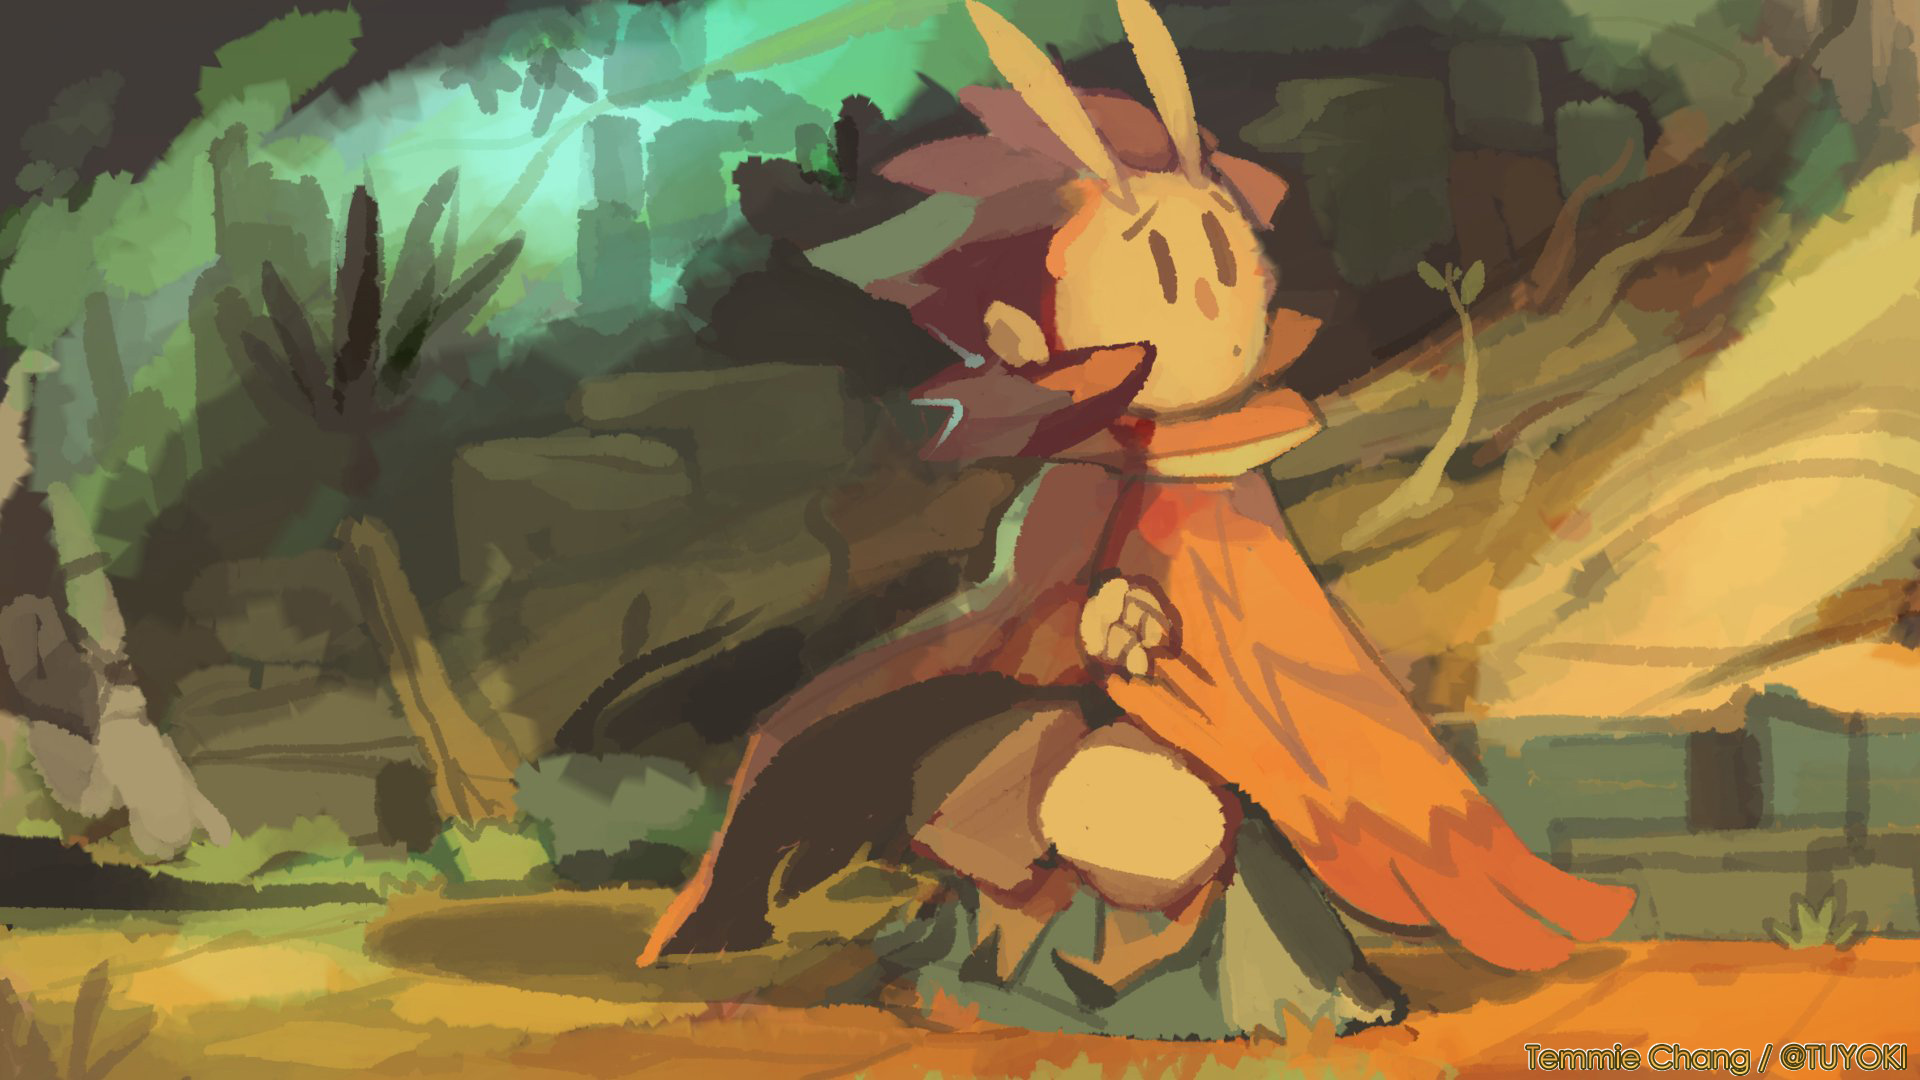 Owlboy is getting a physical limited edition for consoles screenshot